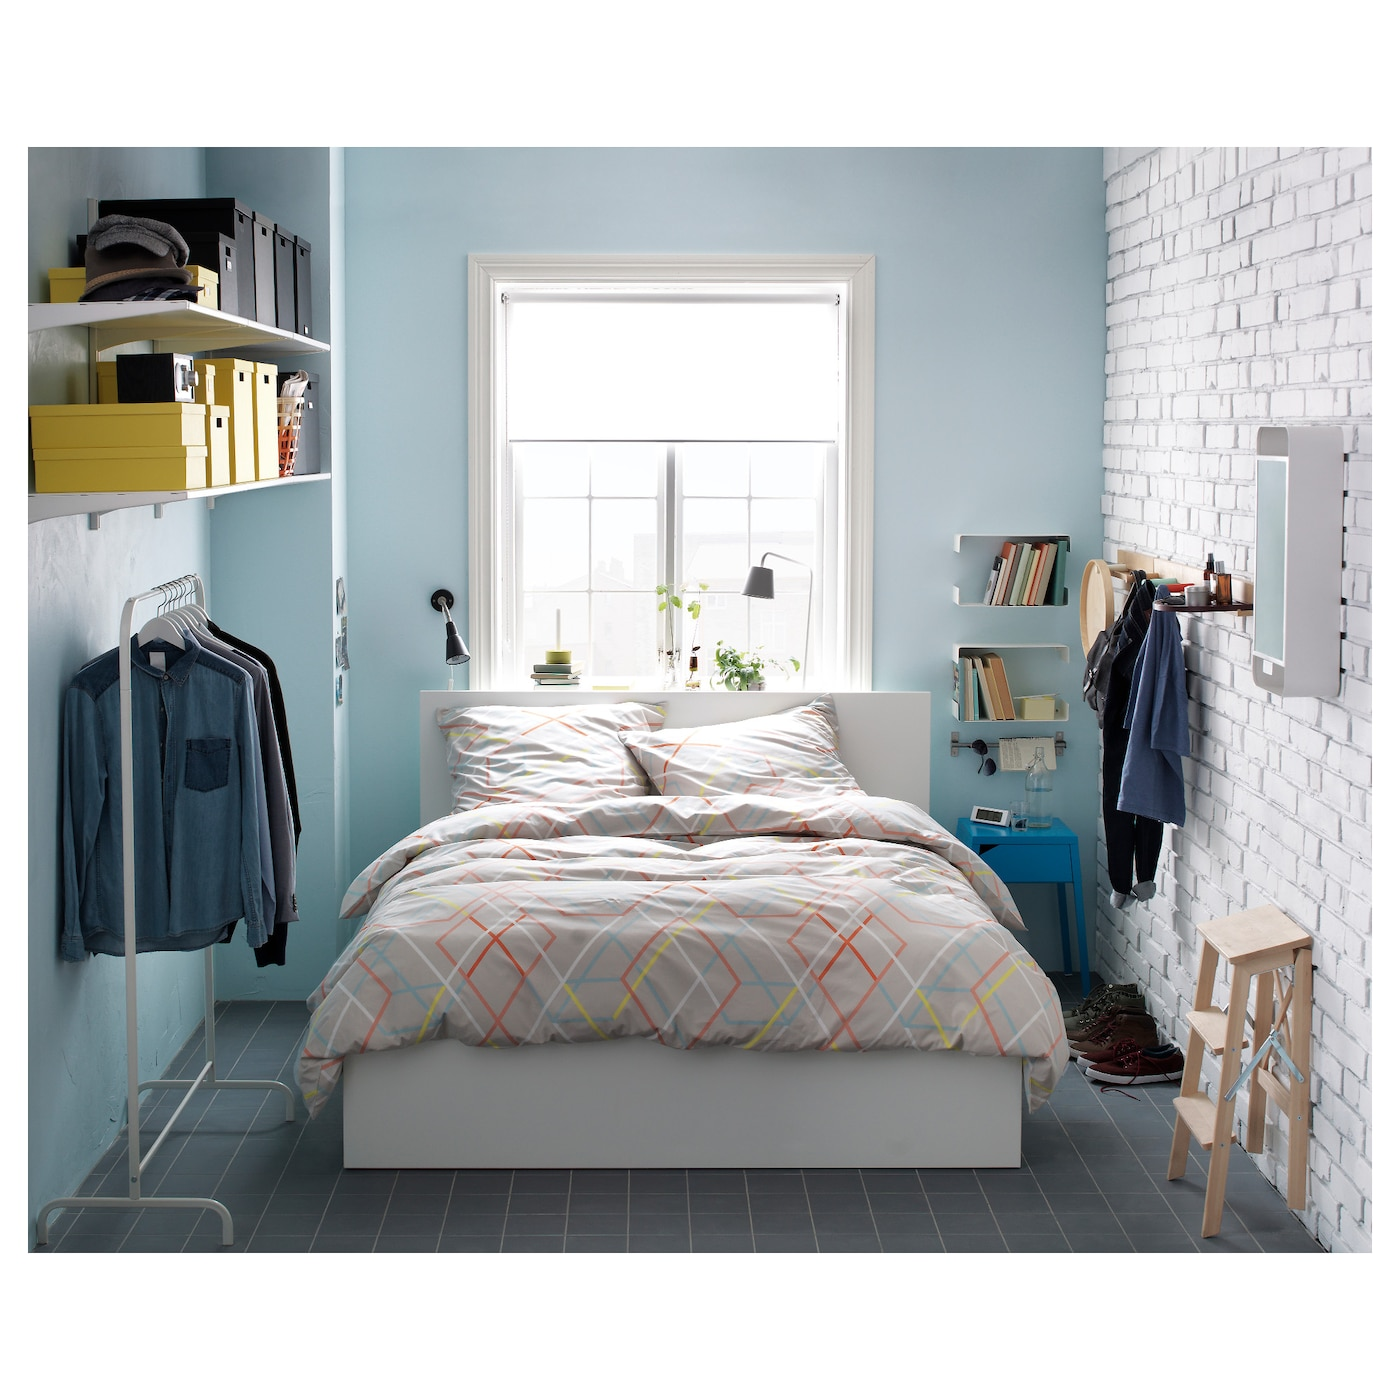 Bedroom Wall Decor Ikea Bedroom Under Window Cute Anime Bedroom Blue And Brown Bedroom Ideas: MALM Ottoman Bed White Standard Double